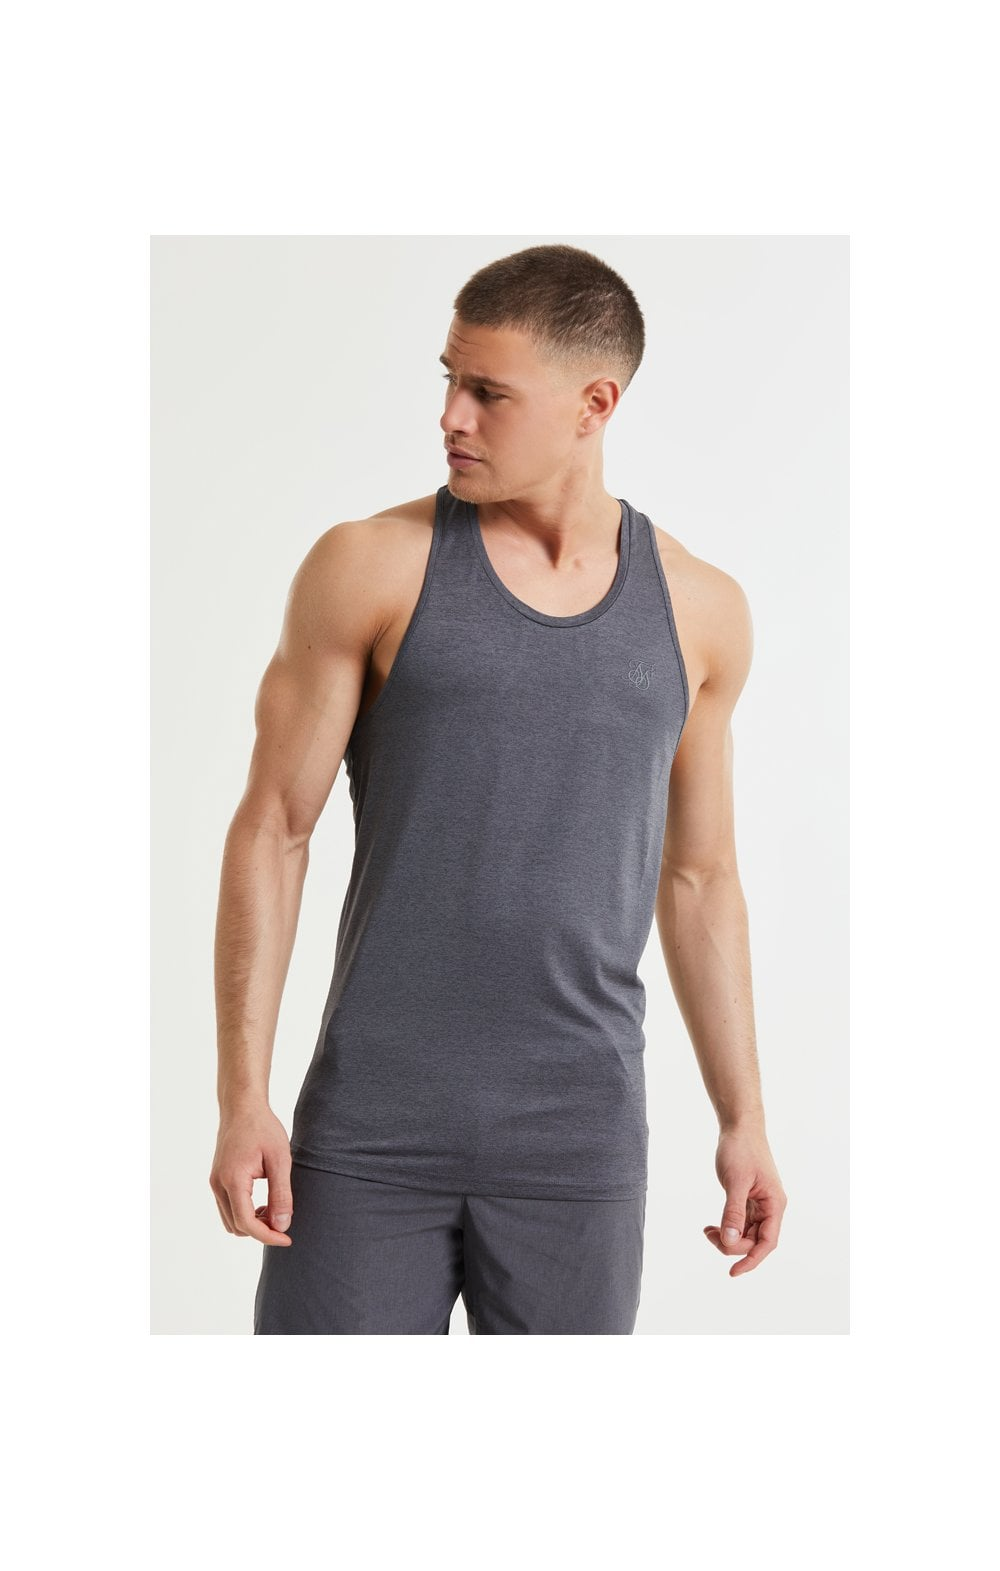 Load image into Gallery viewer, SikSilk Pressure Vest - Charcoal Marl